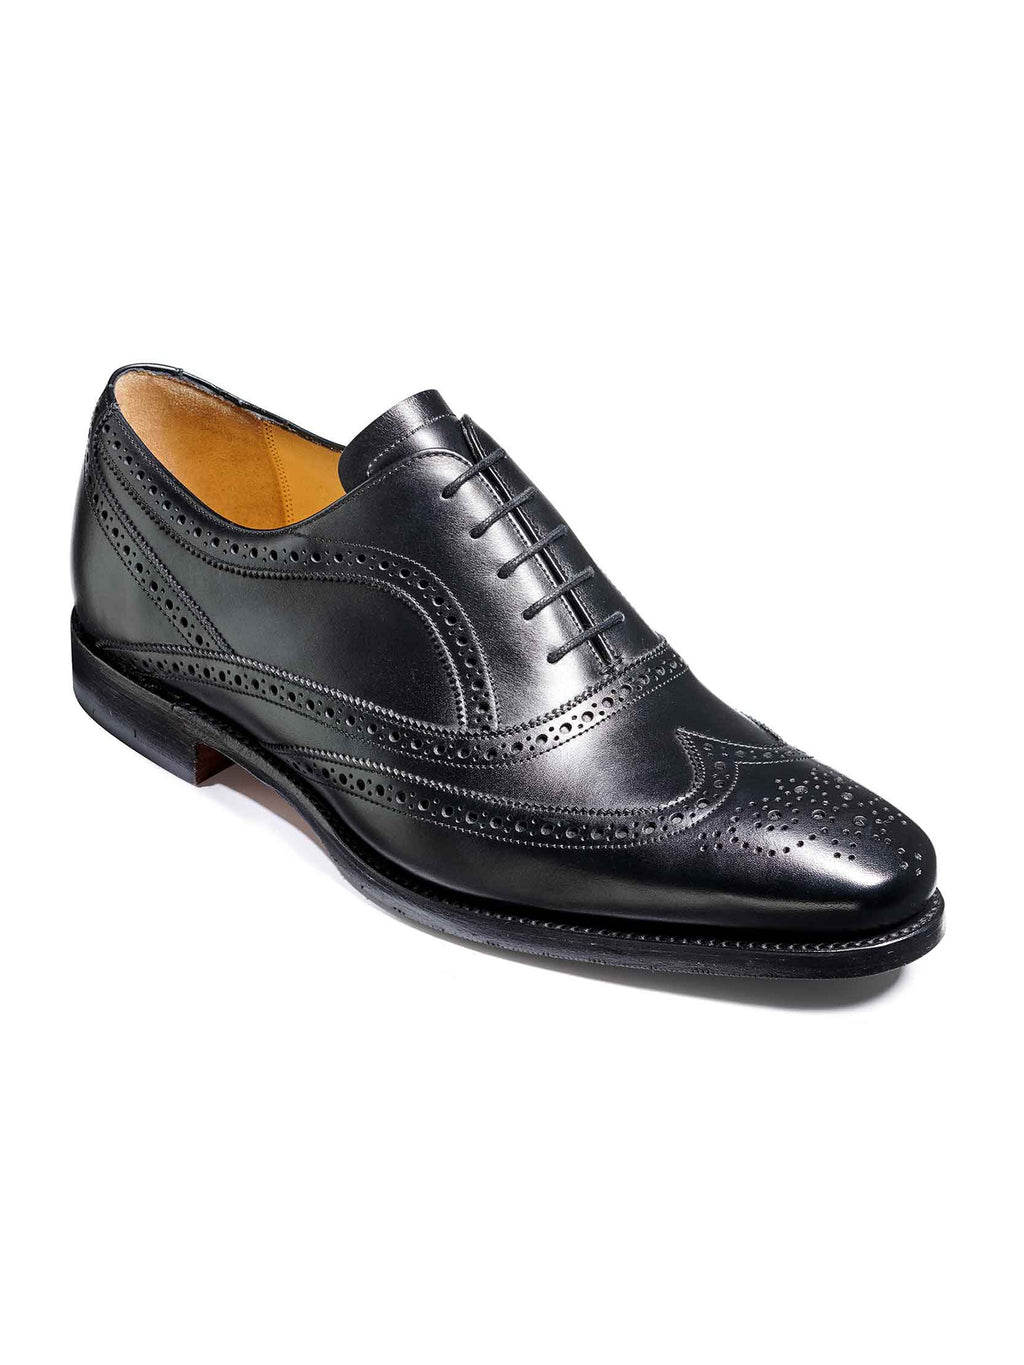 barker turing shoes black